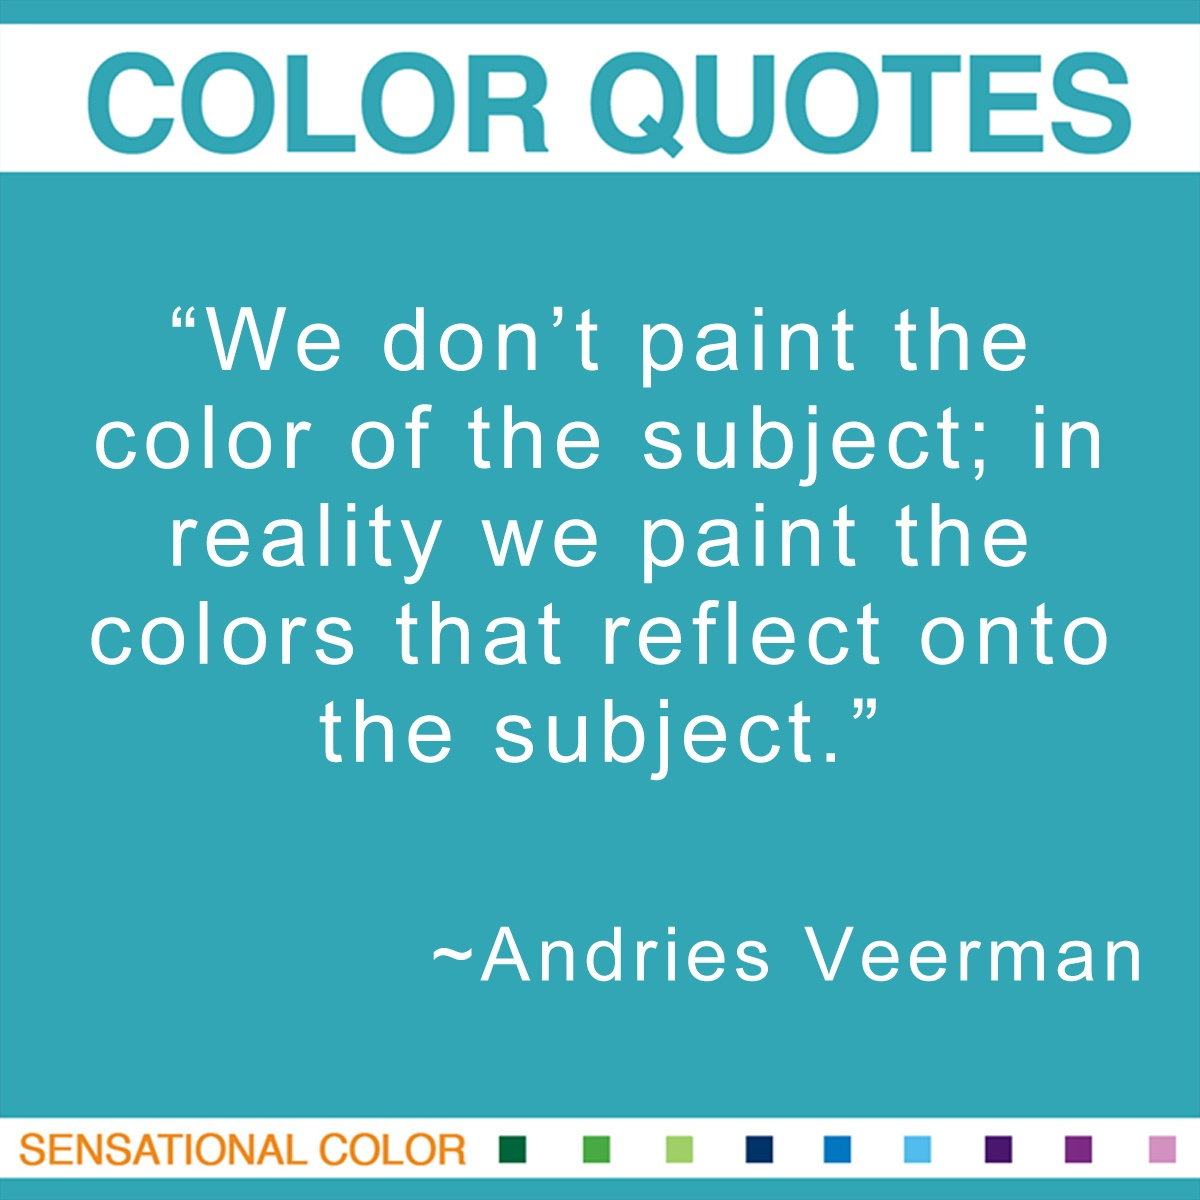 """We don't paint the color of the subject; in reality we paint the colors that reflect onto the subject."" - Andries Veerman"